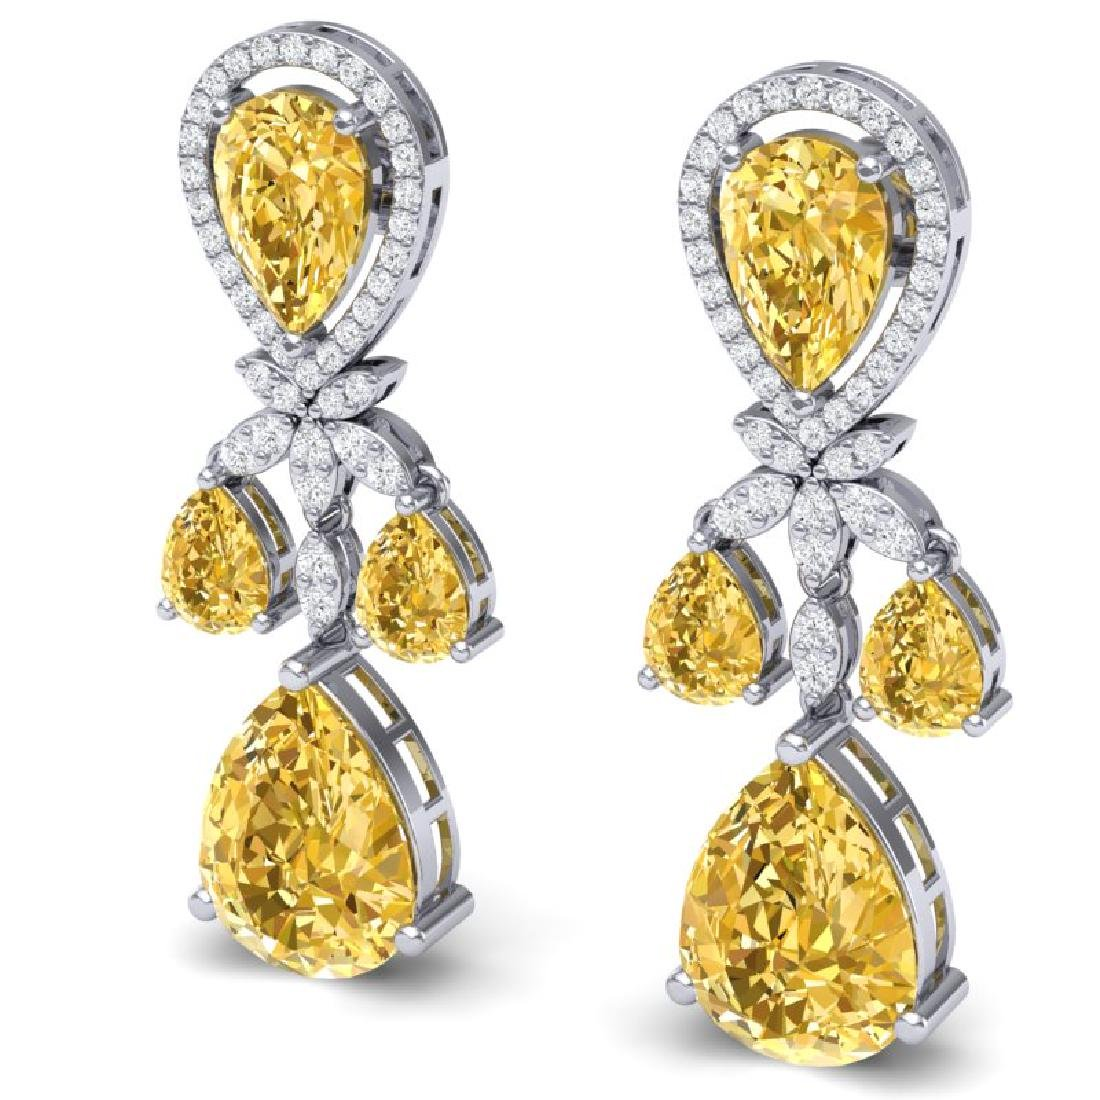 35.67 CTW Royalty Canary Citrine & VS Diamond Earrings - 2